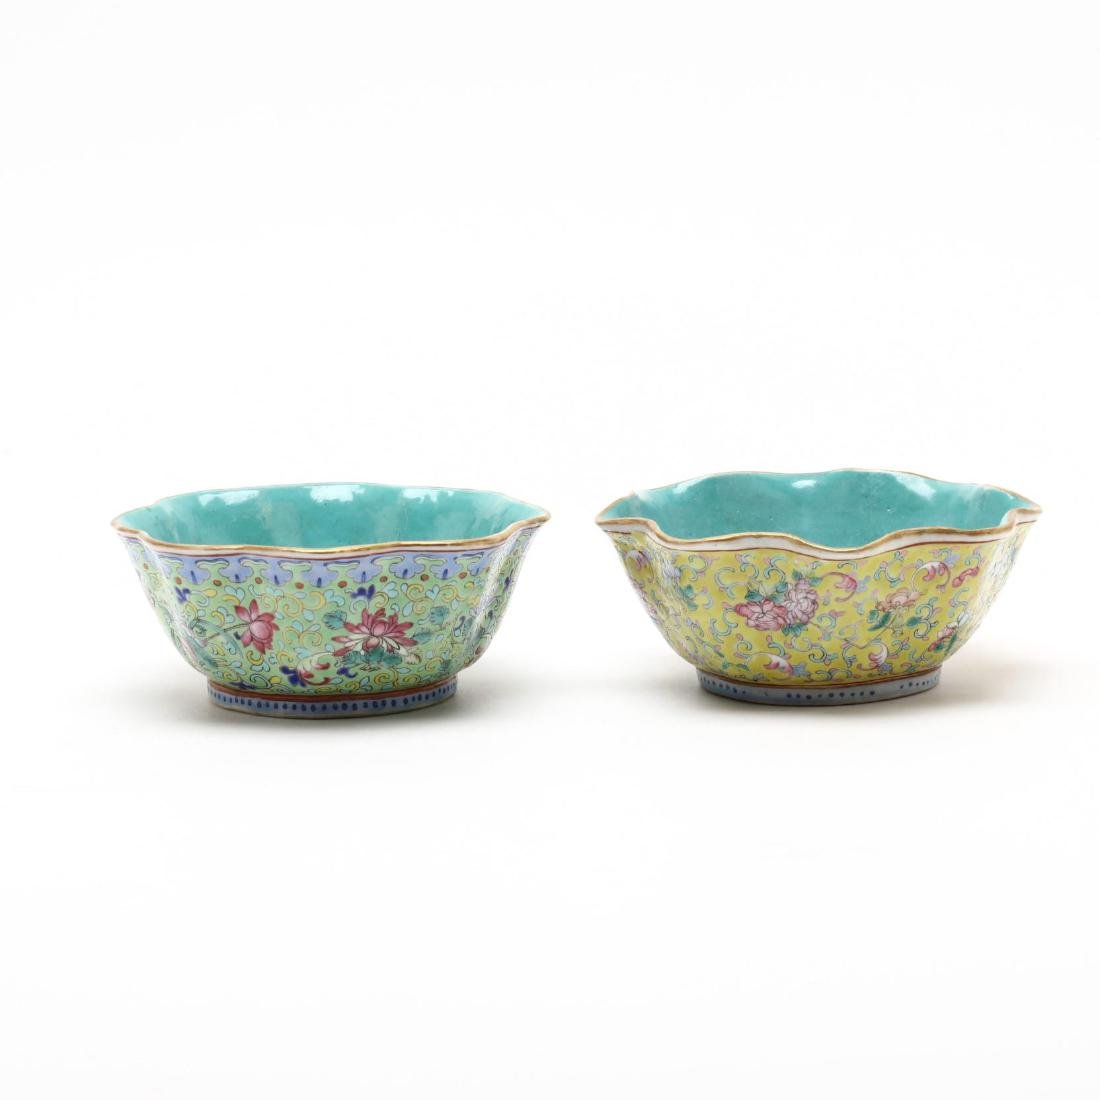 A Matched Pair of Chinese Porcelain Scalloped Bowls